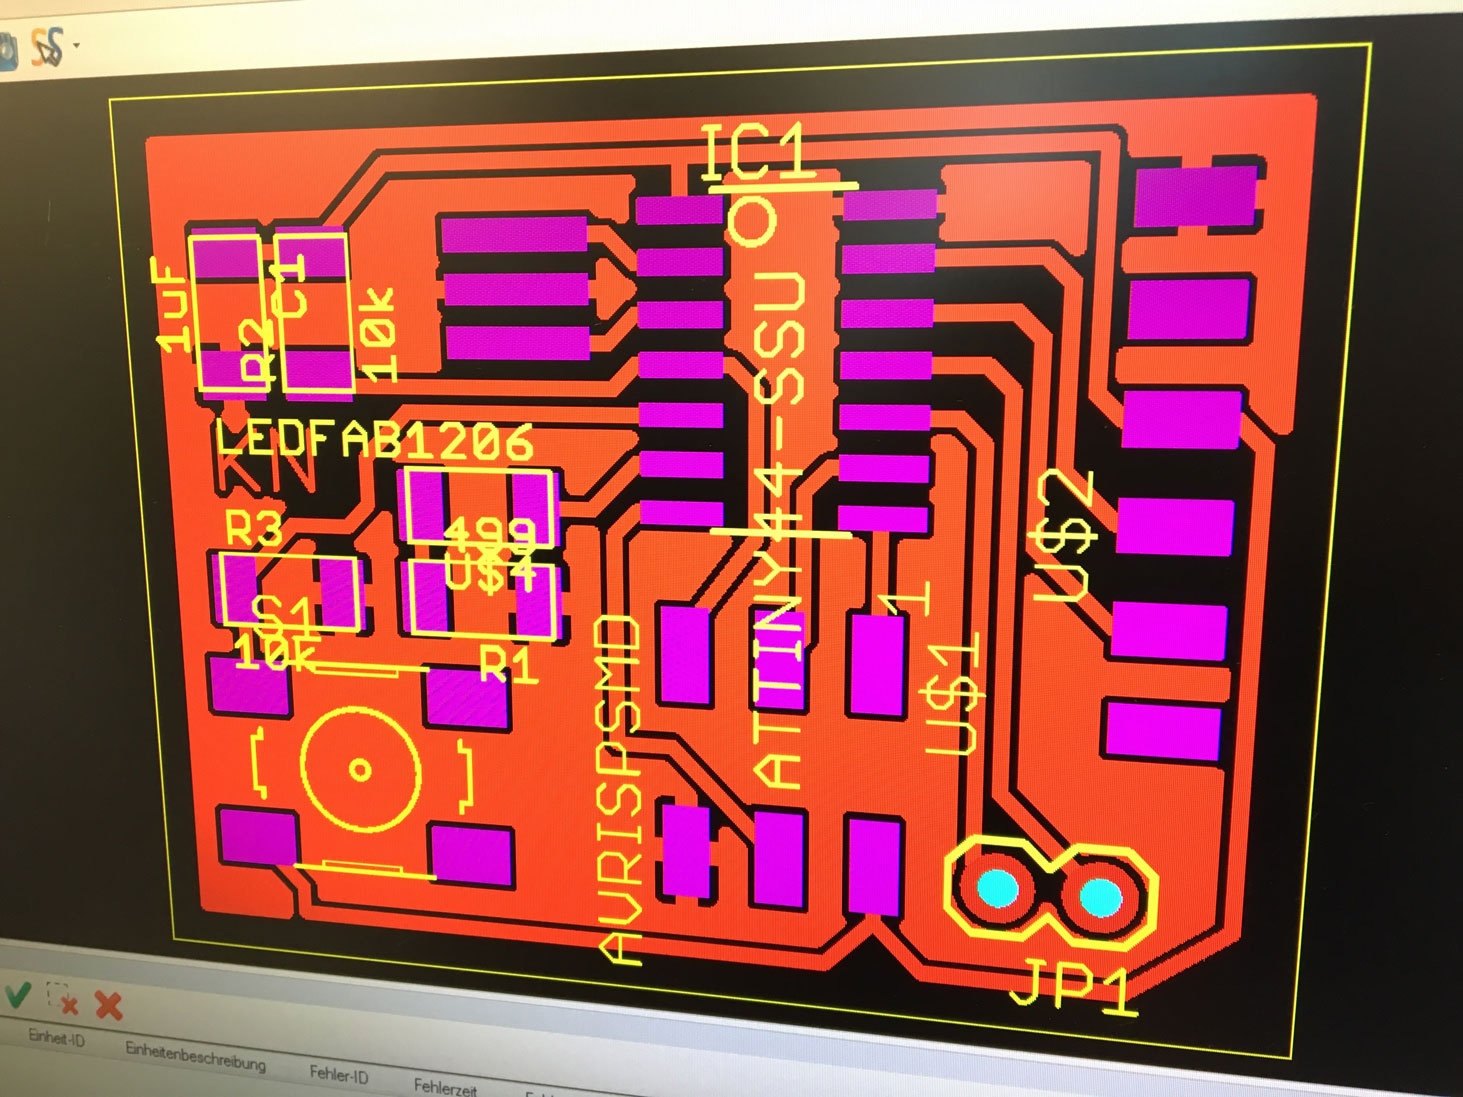 Fab Academy 2016 Karsten Nebe Circuit Board Milling Is Performed On Our Protomat S63 I Used The Microscope To Check Quality Of After All Looked Fine We Solder Varnish Seal Surface From Oxidation